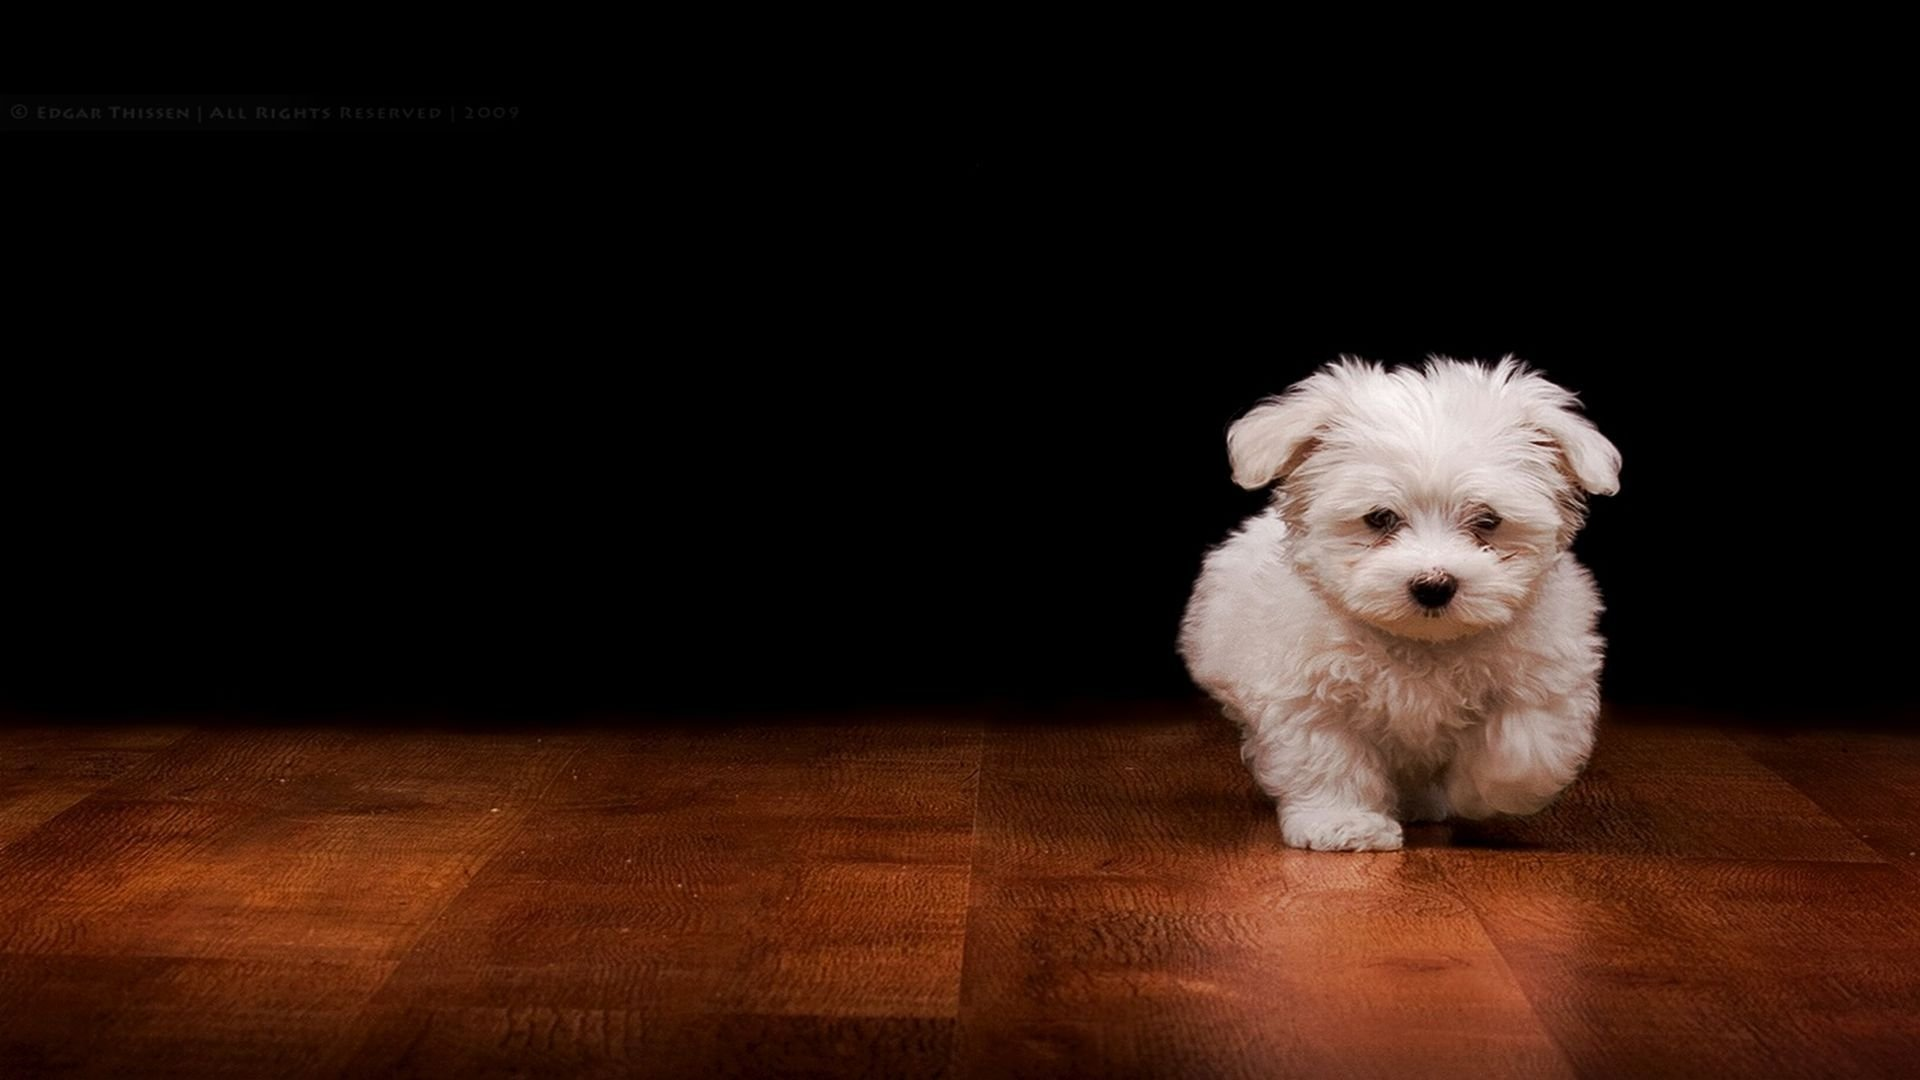 Cute White Wallpaper 1920x1080